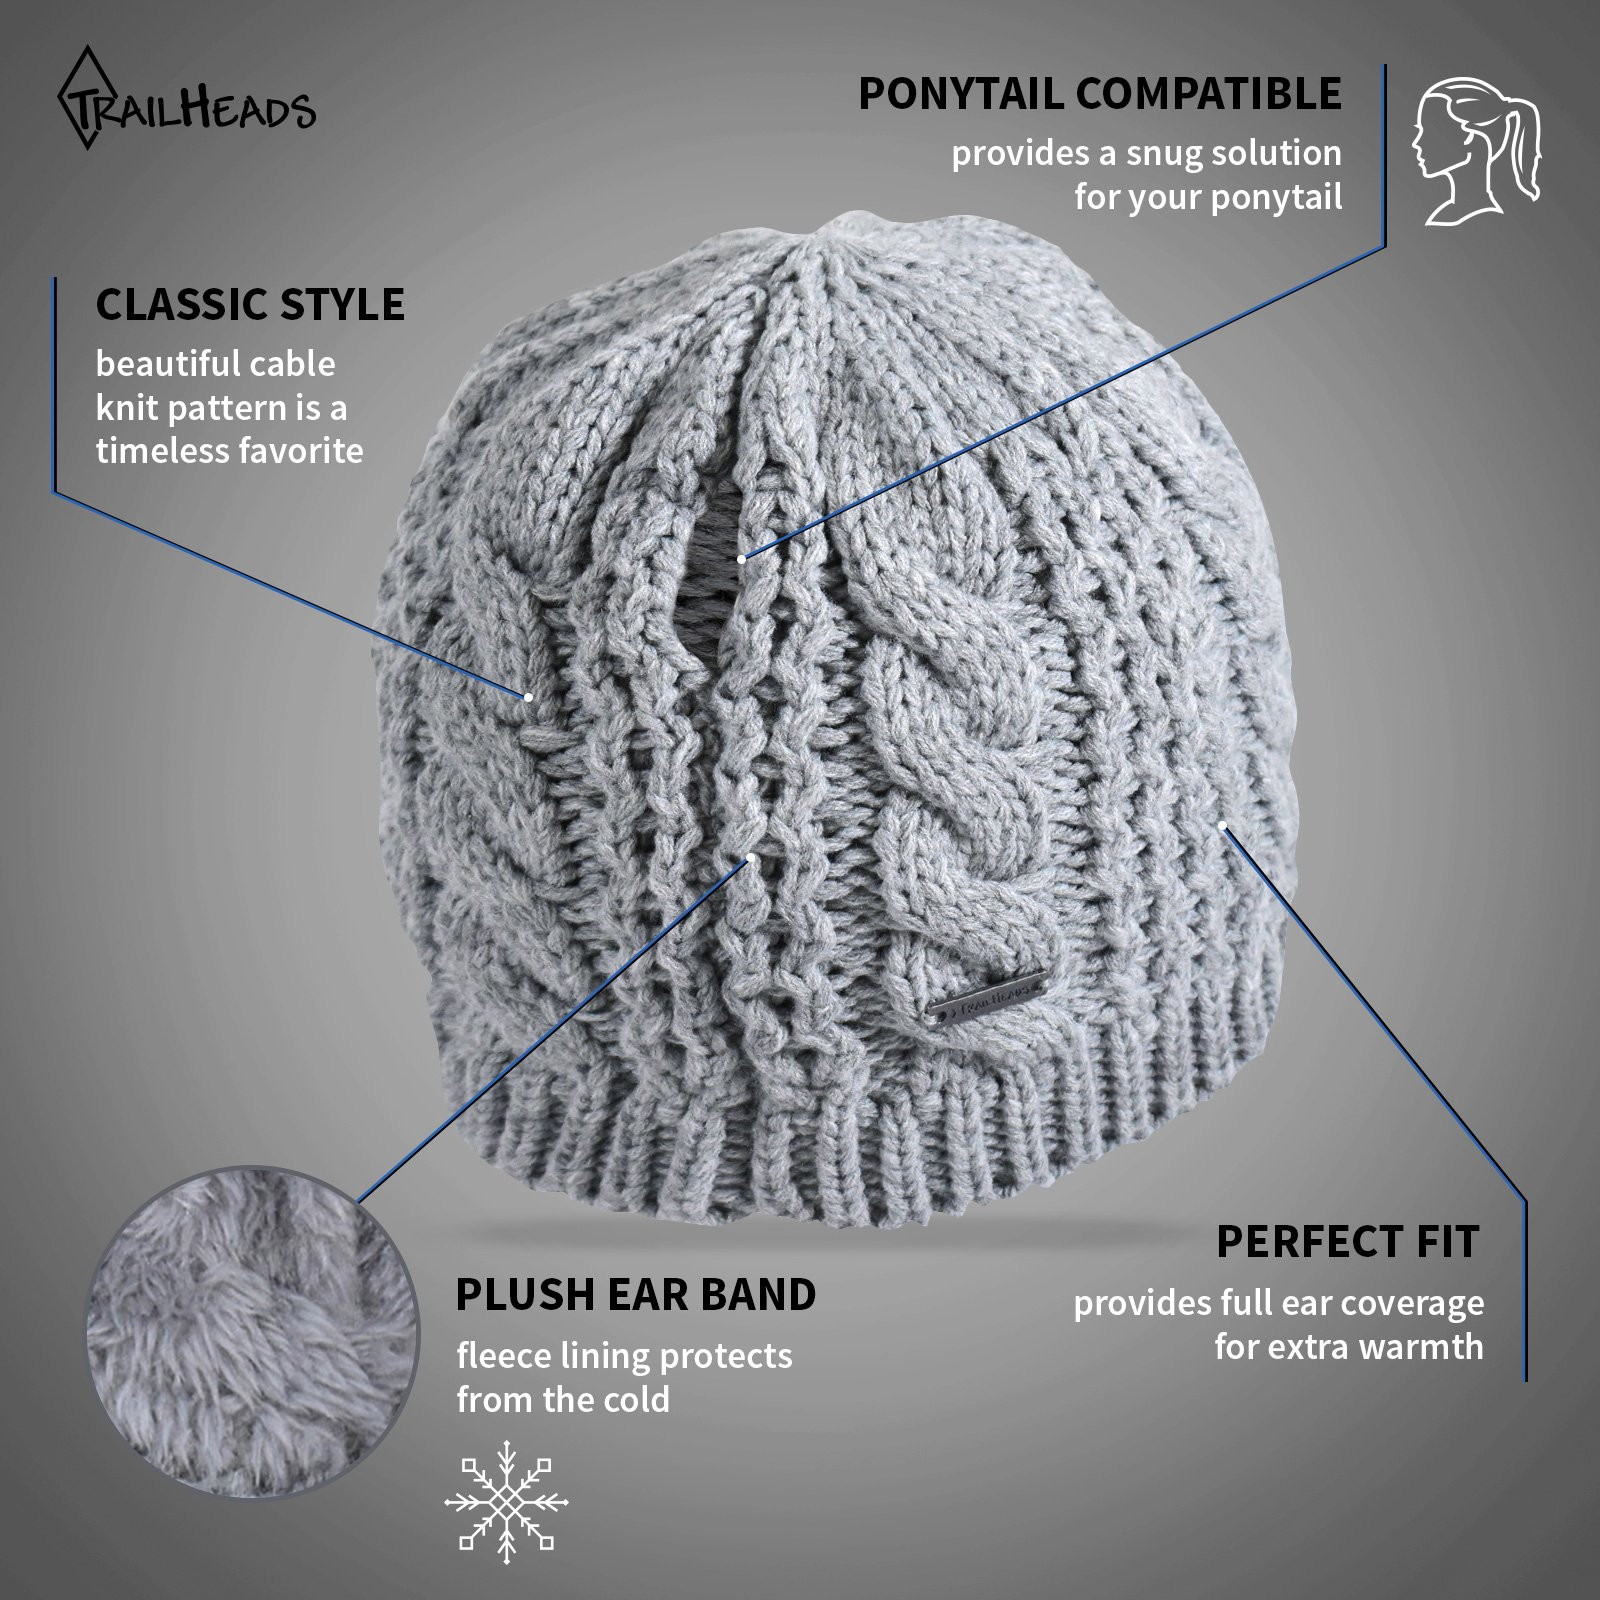 TrailHeads Women's Cable Knit Ponytail Beanie - storm grey by TrailHeads (Image #2)